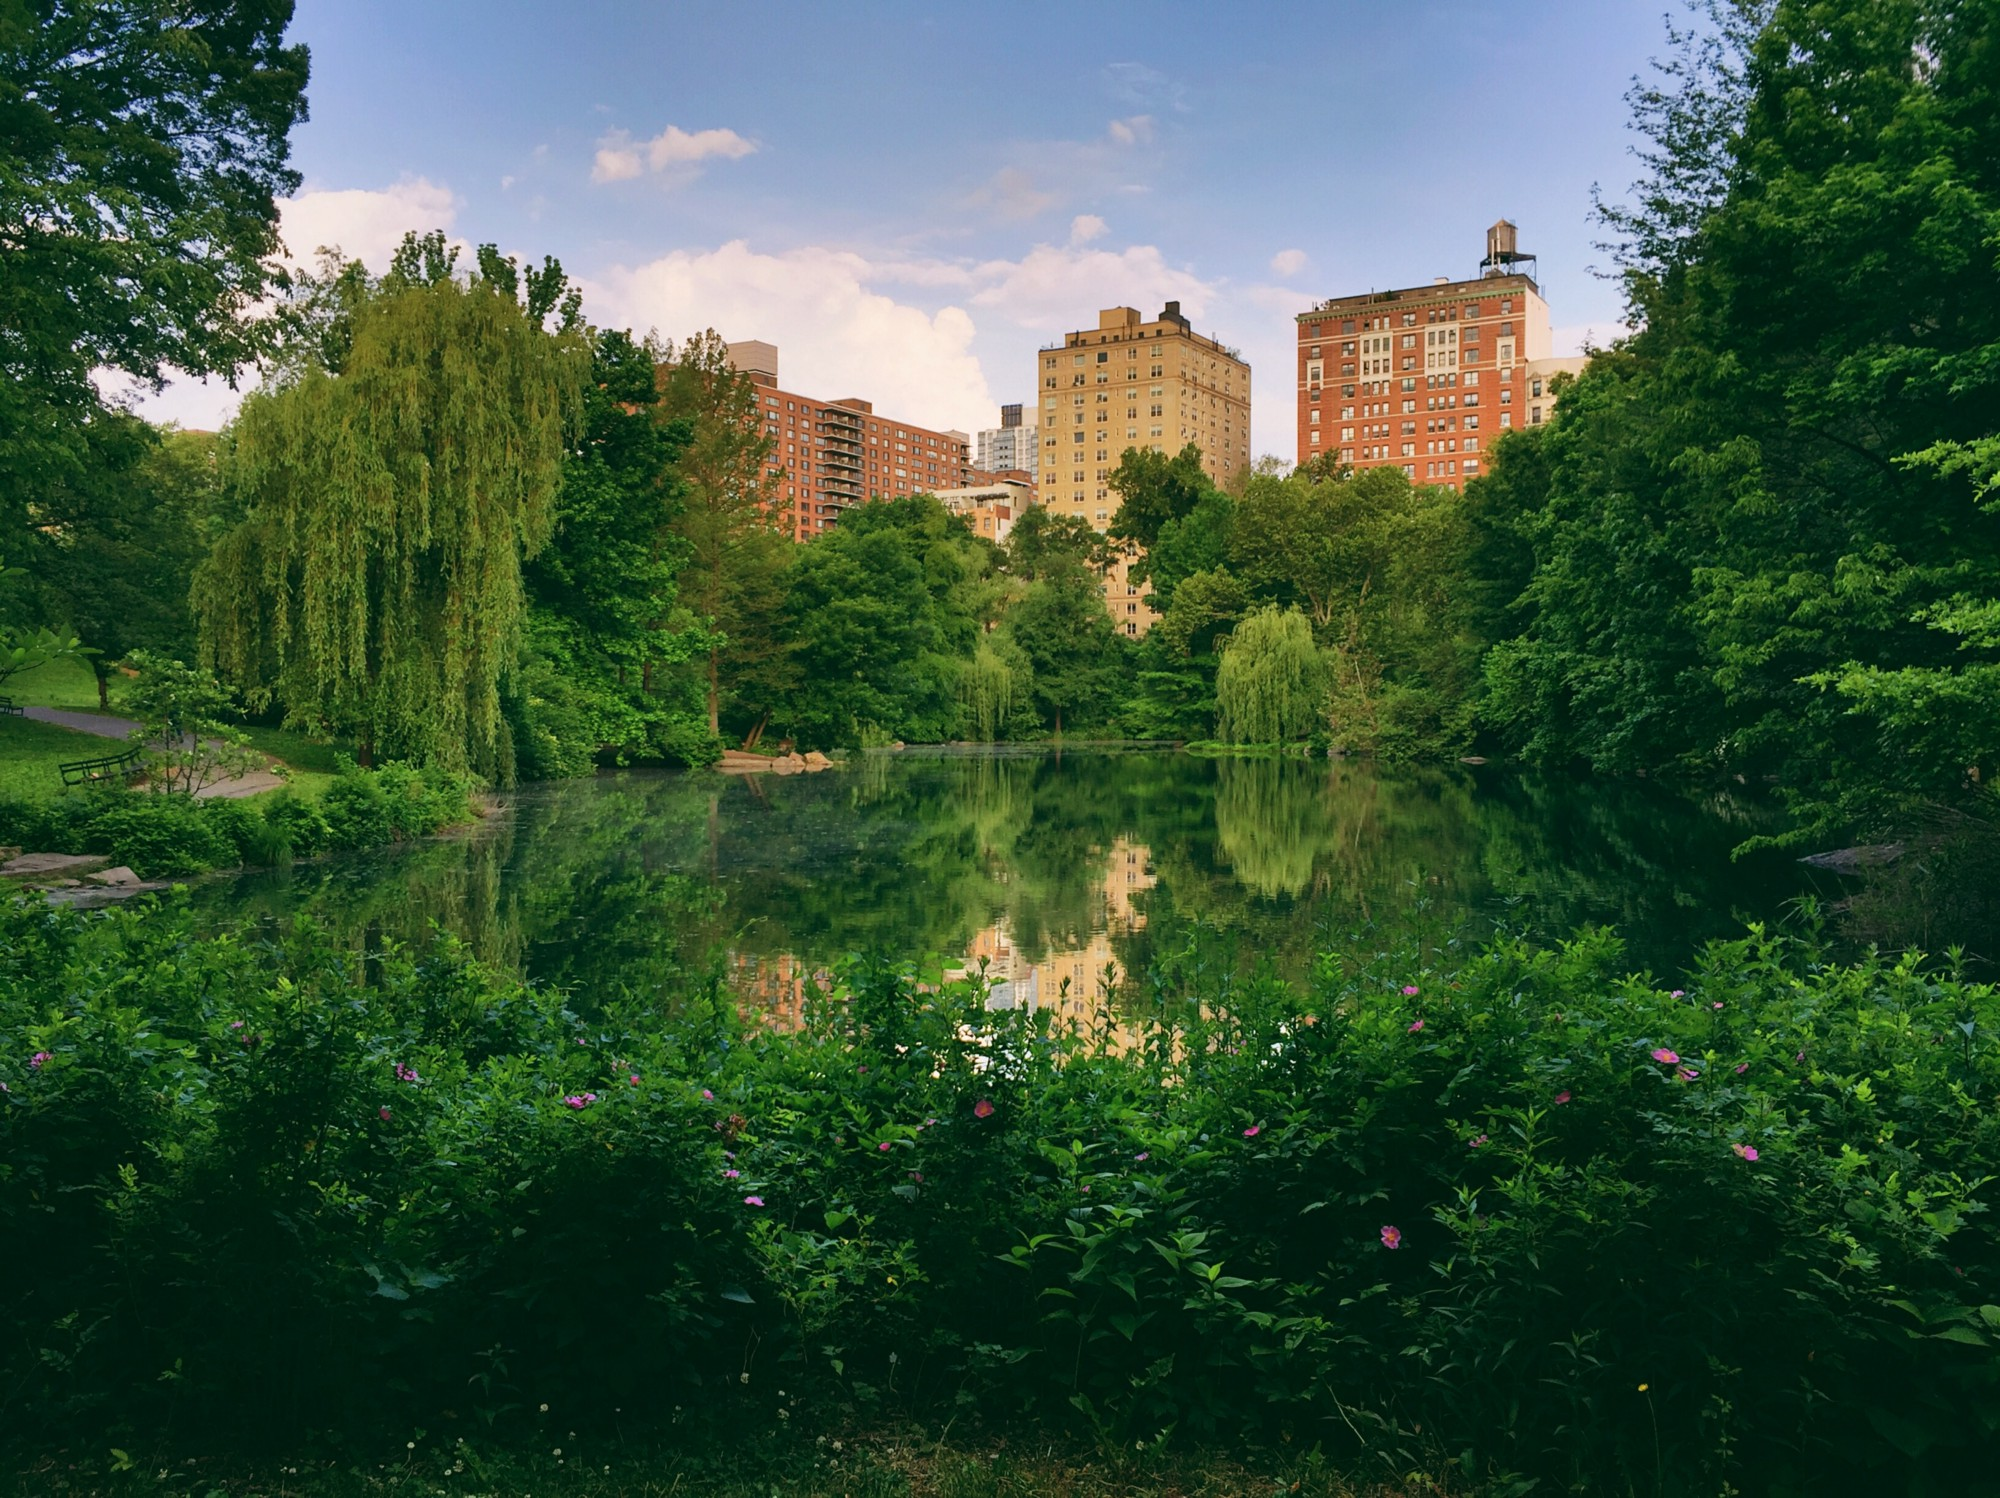 A view of a lake in Central Park, with apartment buildings visible in the background.